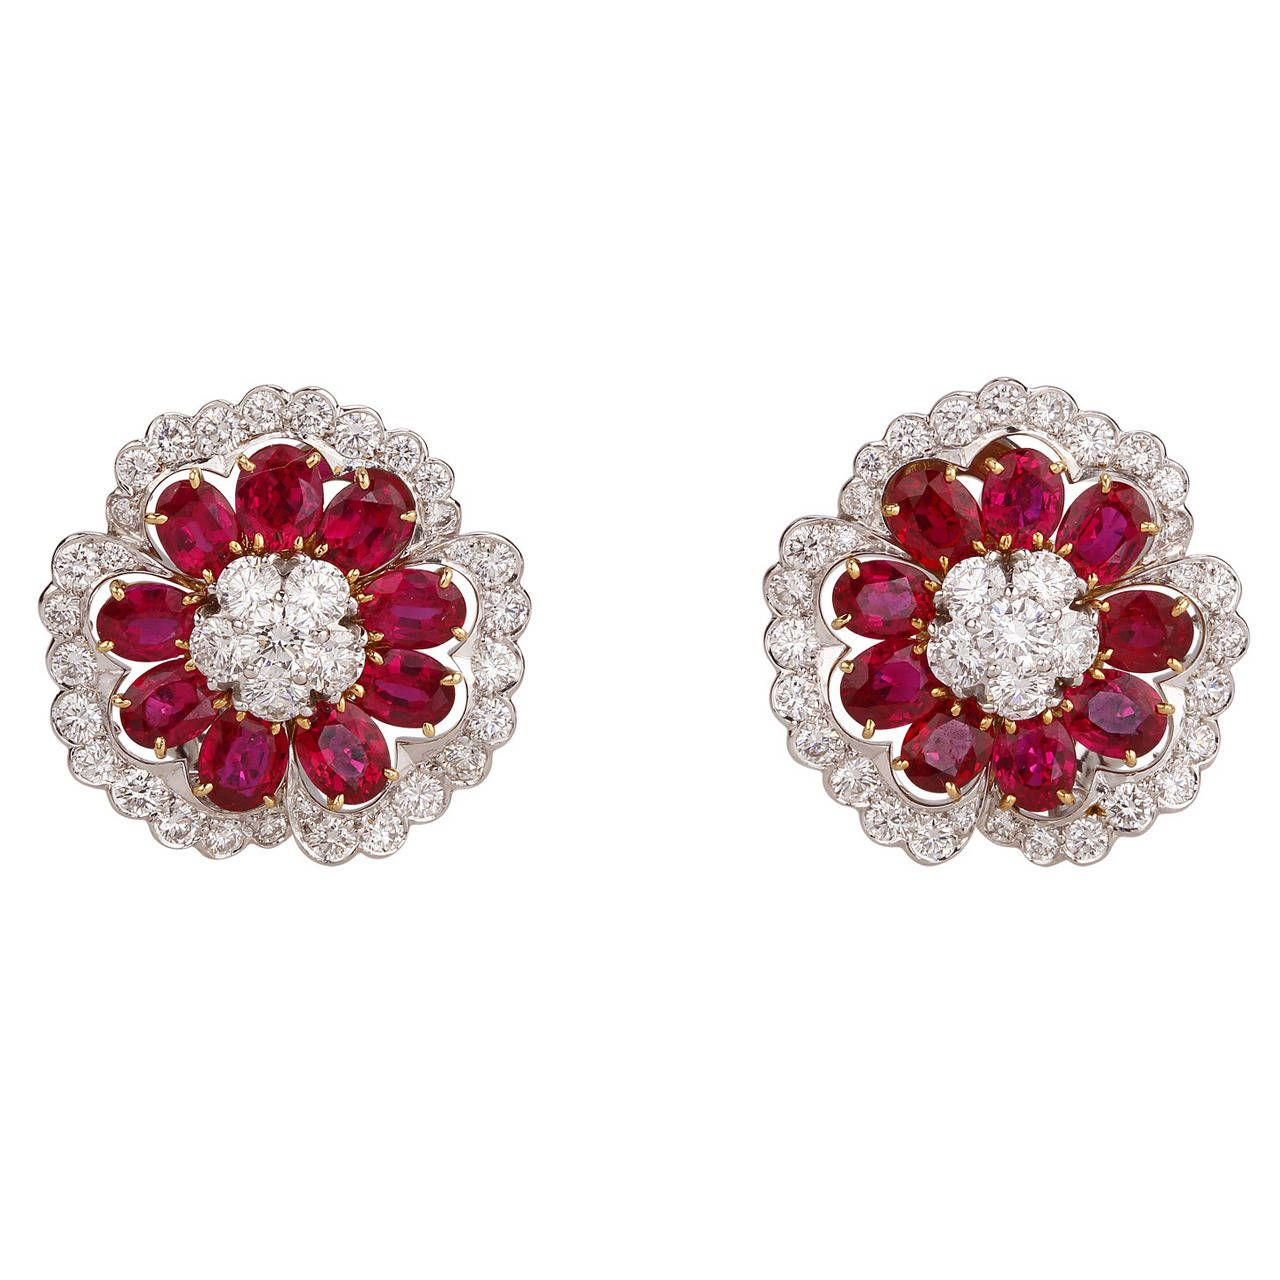 Van Cleef & Arpels Ruby Diamond Camellia Earrings